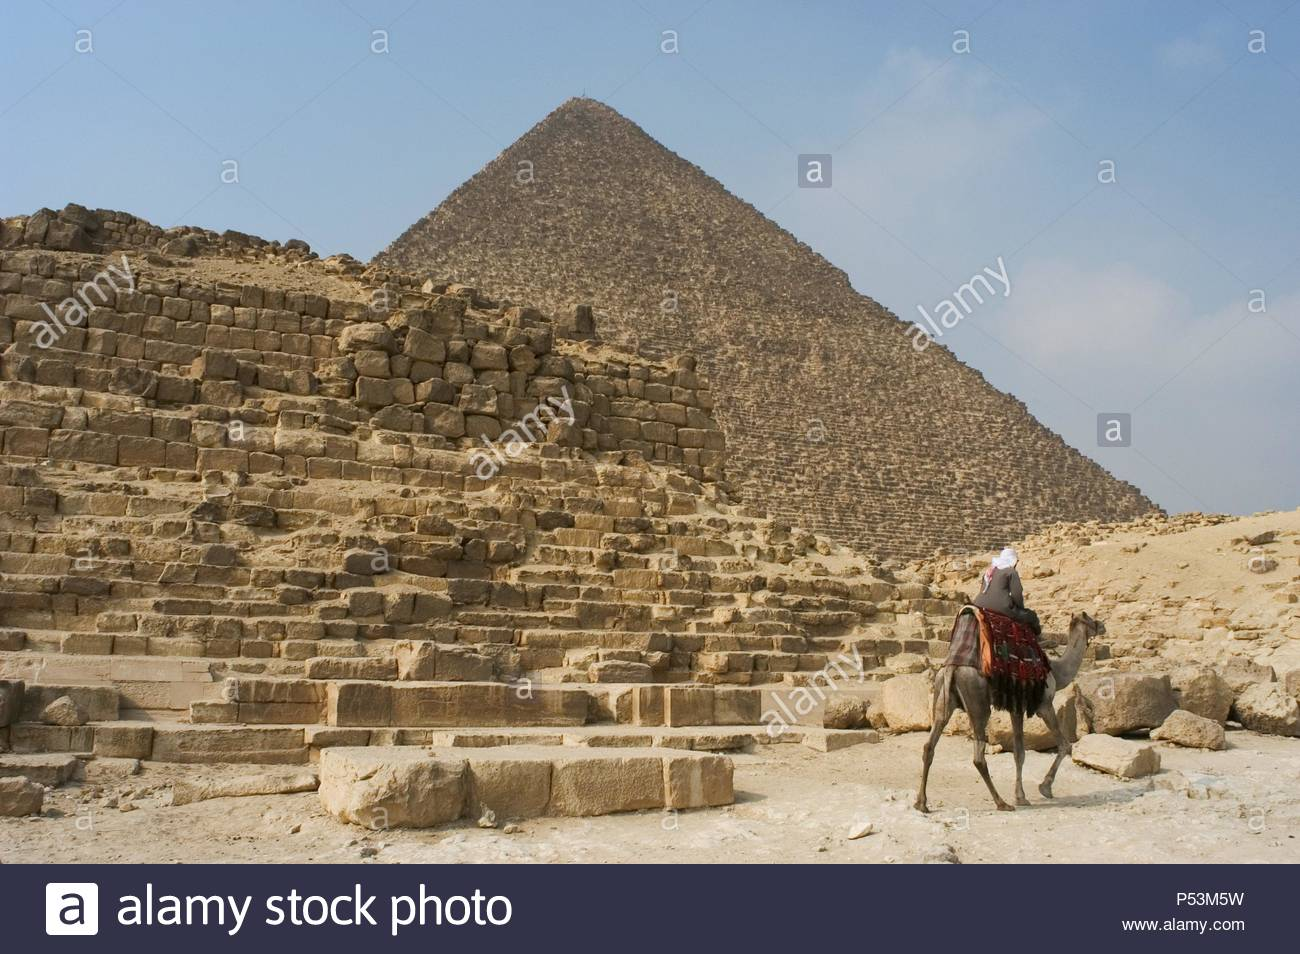 Egypt. Pyramid G1-b, one of the subsidiary pyramids of the Giza East Field of the Giza Necropolis located to the eastern side of the Great Pyramid of Giza or Pyramid of Khufu (at the background). Fourth dynasty of Egypt. Old Kingdom. Attributed to the queen Meritites I or to the Queen Noubet. - Stock Image